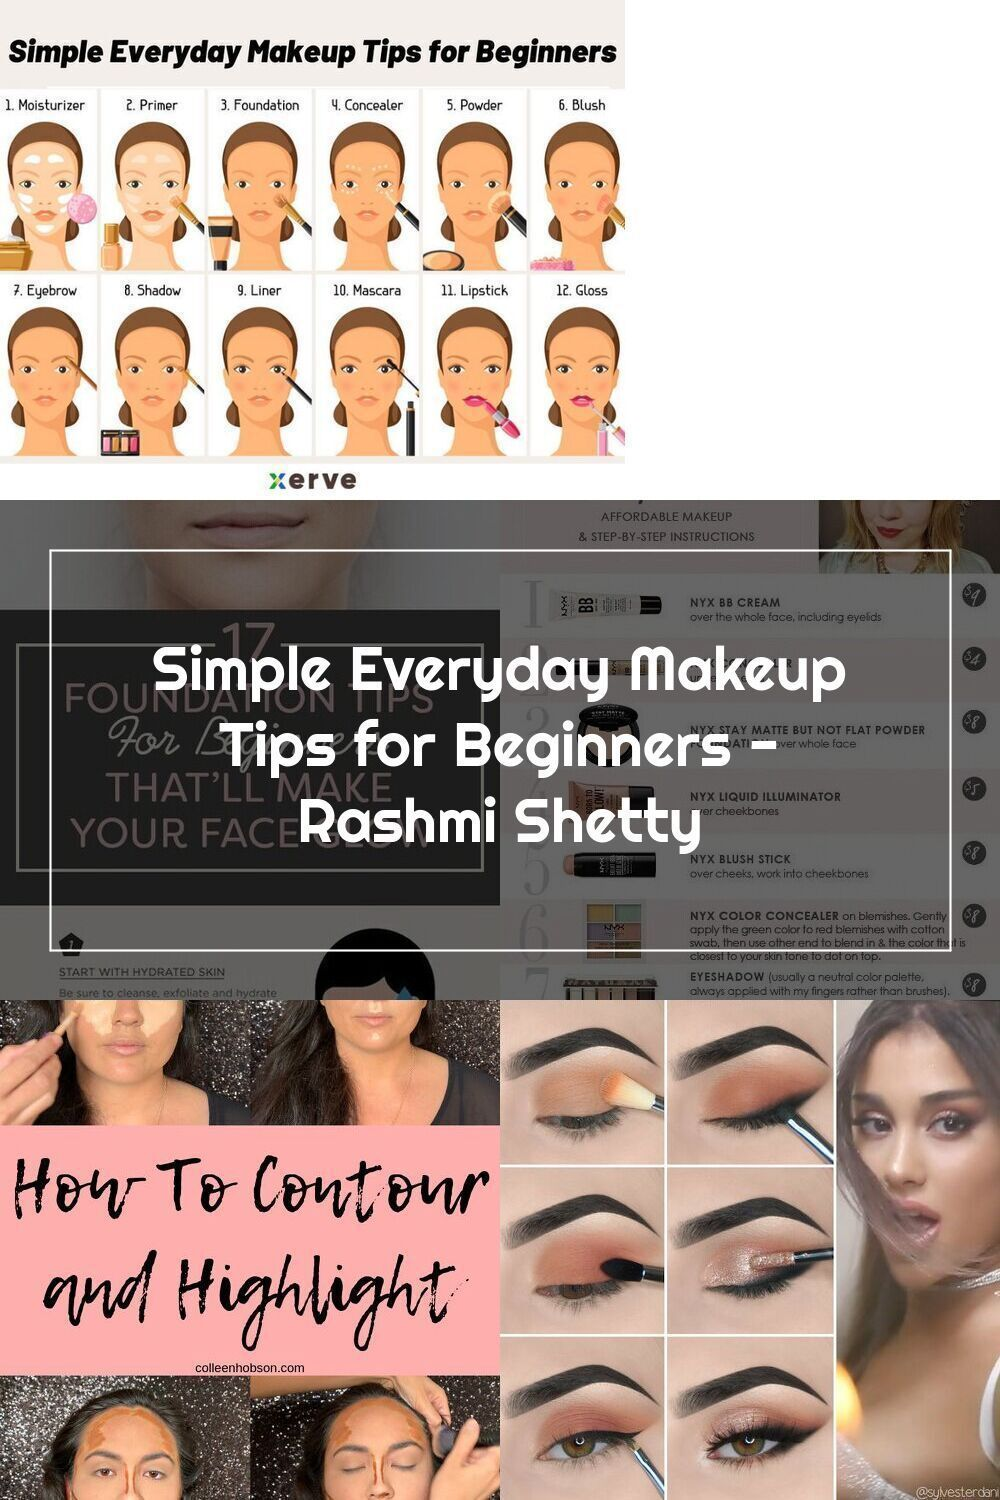 Simple Everyday Makeup Tips for Beginners Rashmi Shetty in 12